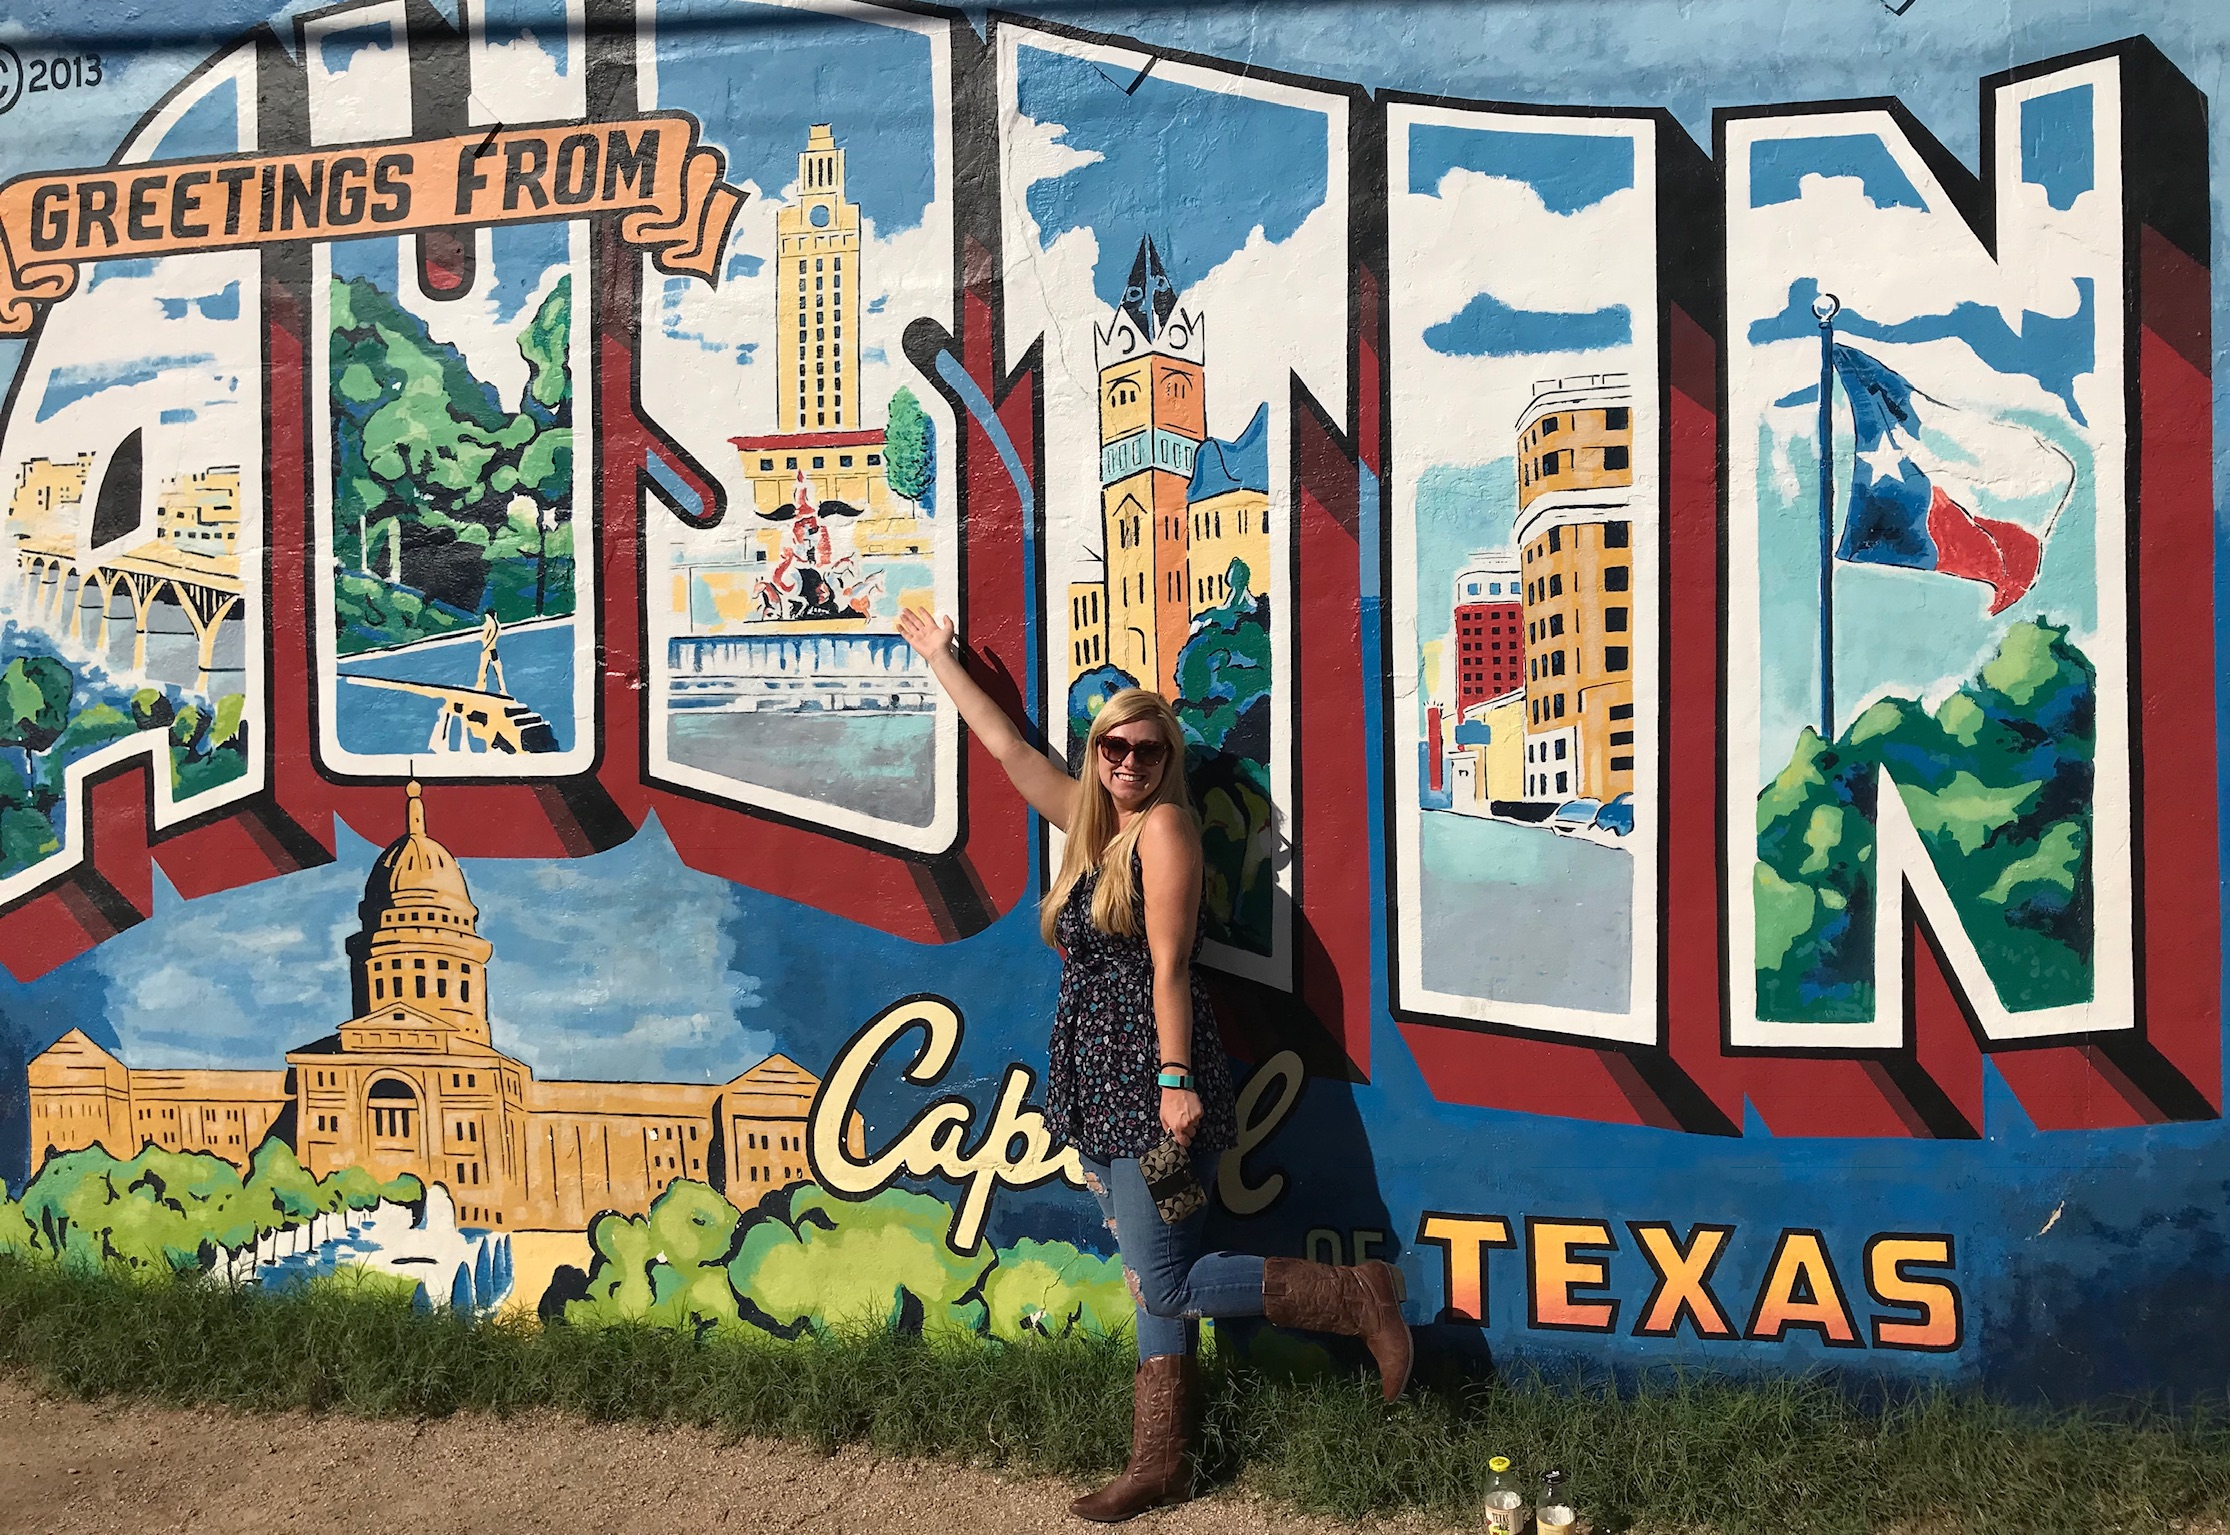 Anna Osgoodby Life + Biz :: Travel Guide for Visiting Austin Texas + Day Trips to Waco and San Antonio